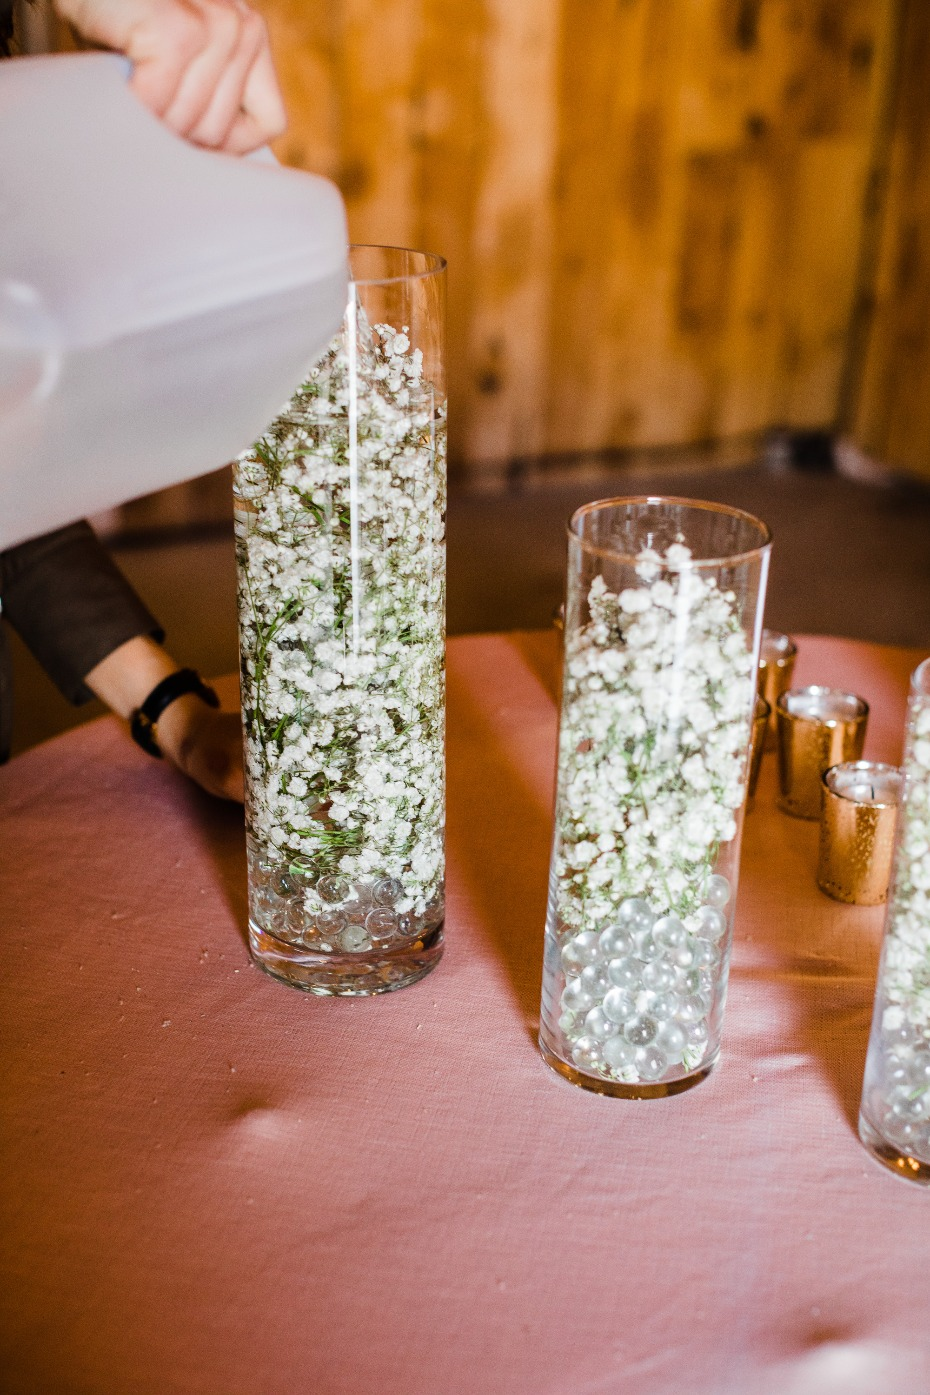 DIY Wedding Reception Centerpiece Pouring in Water to Float Flowers